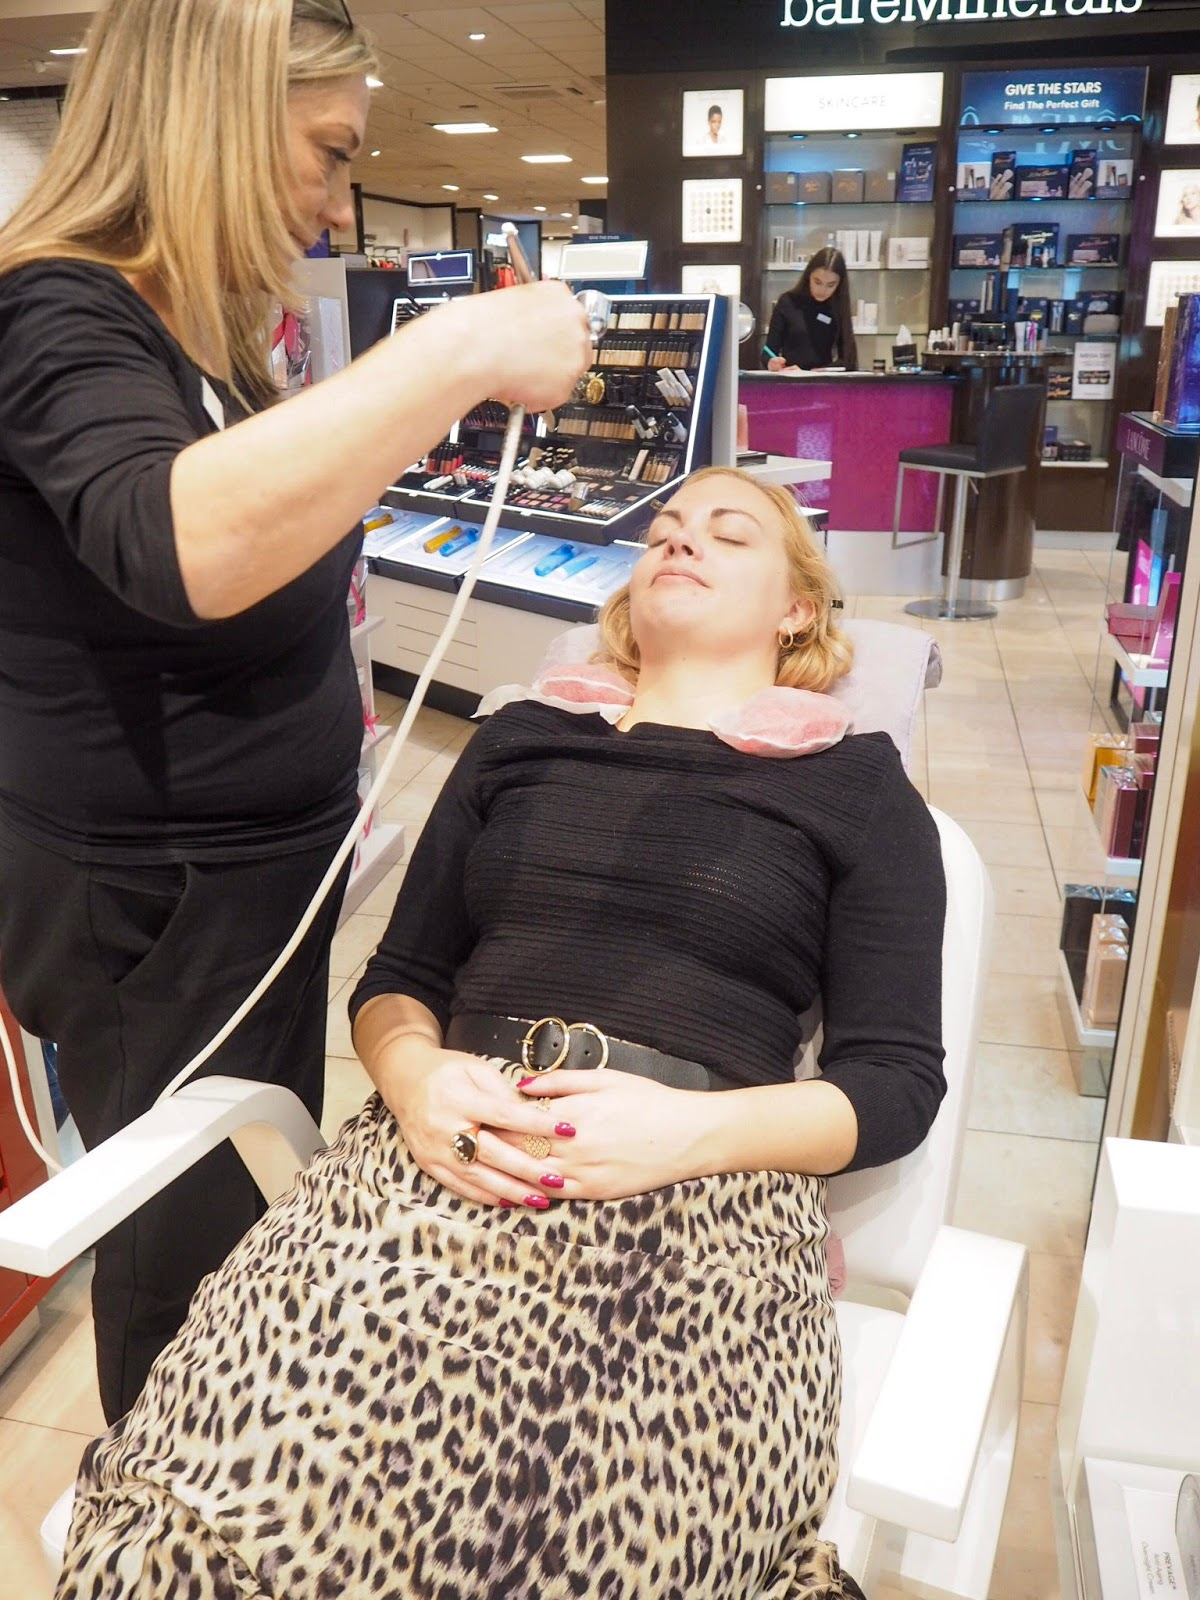 Debenhams Pamper Day & Personal Shopping, Debenhams Brighton, Brighton Blogger, UK Blogger, Katie Kirk Loves, Debenhams Personal Shopper, Elizabeth Arden, Urban Decay, Cherry Eye Shadow Palette